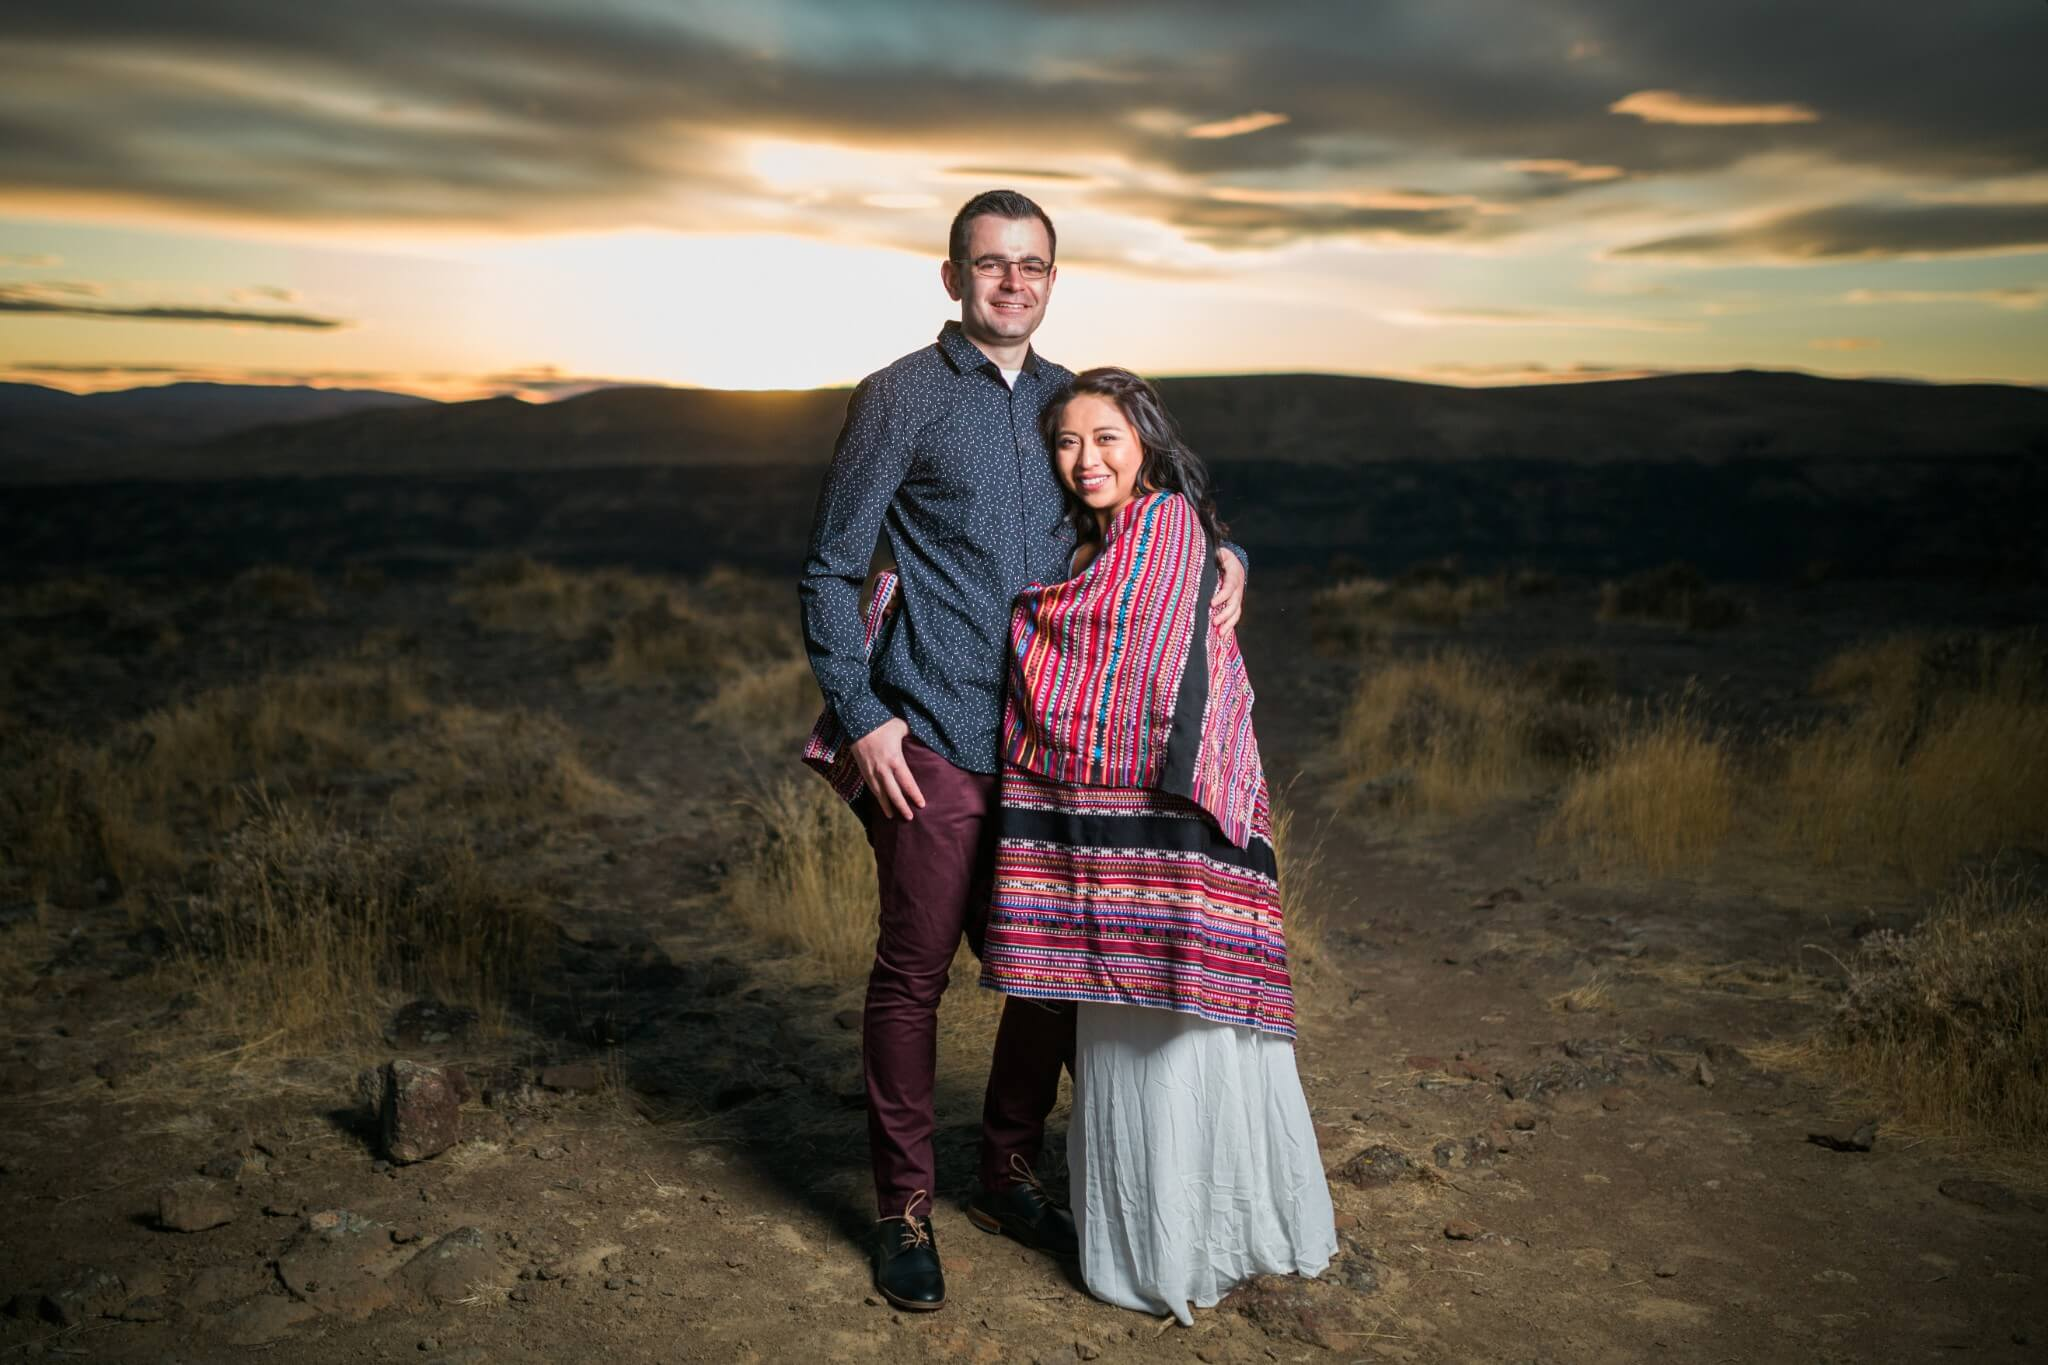 Lesly & Michael Vantage Engagement by Bill Weisgerber Spokane Photographer (60 of 71).jpg